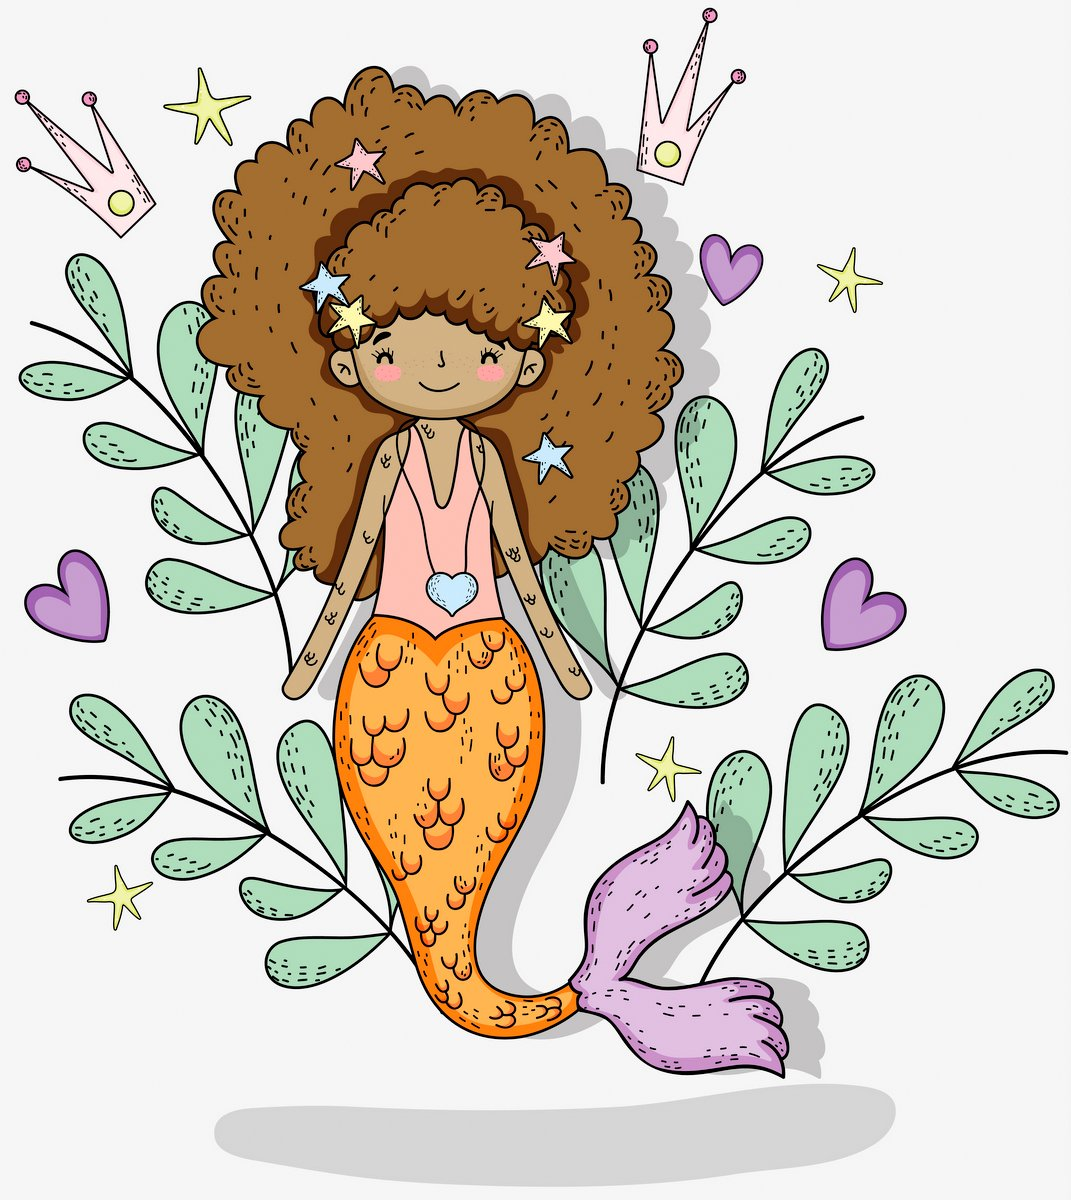 mermaid woman with plants leaves and hearts